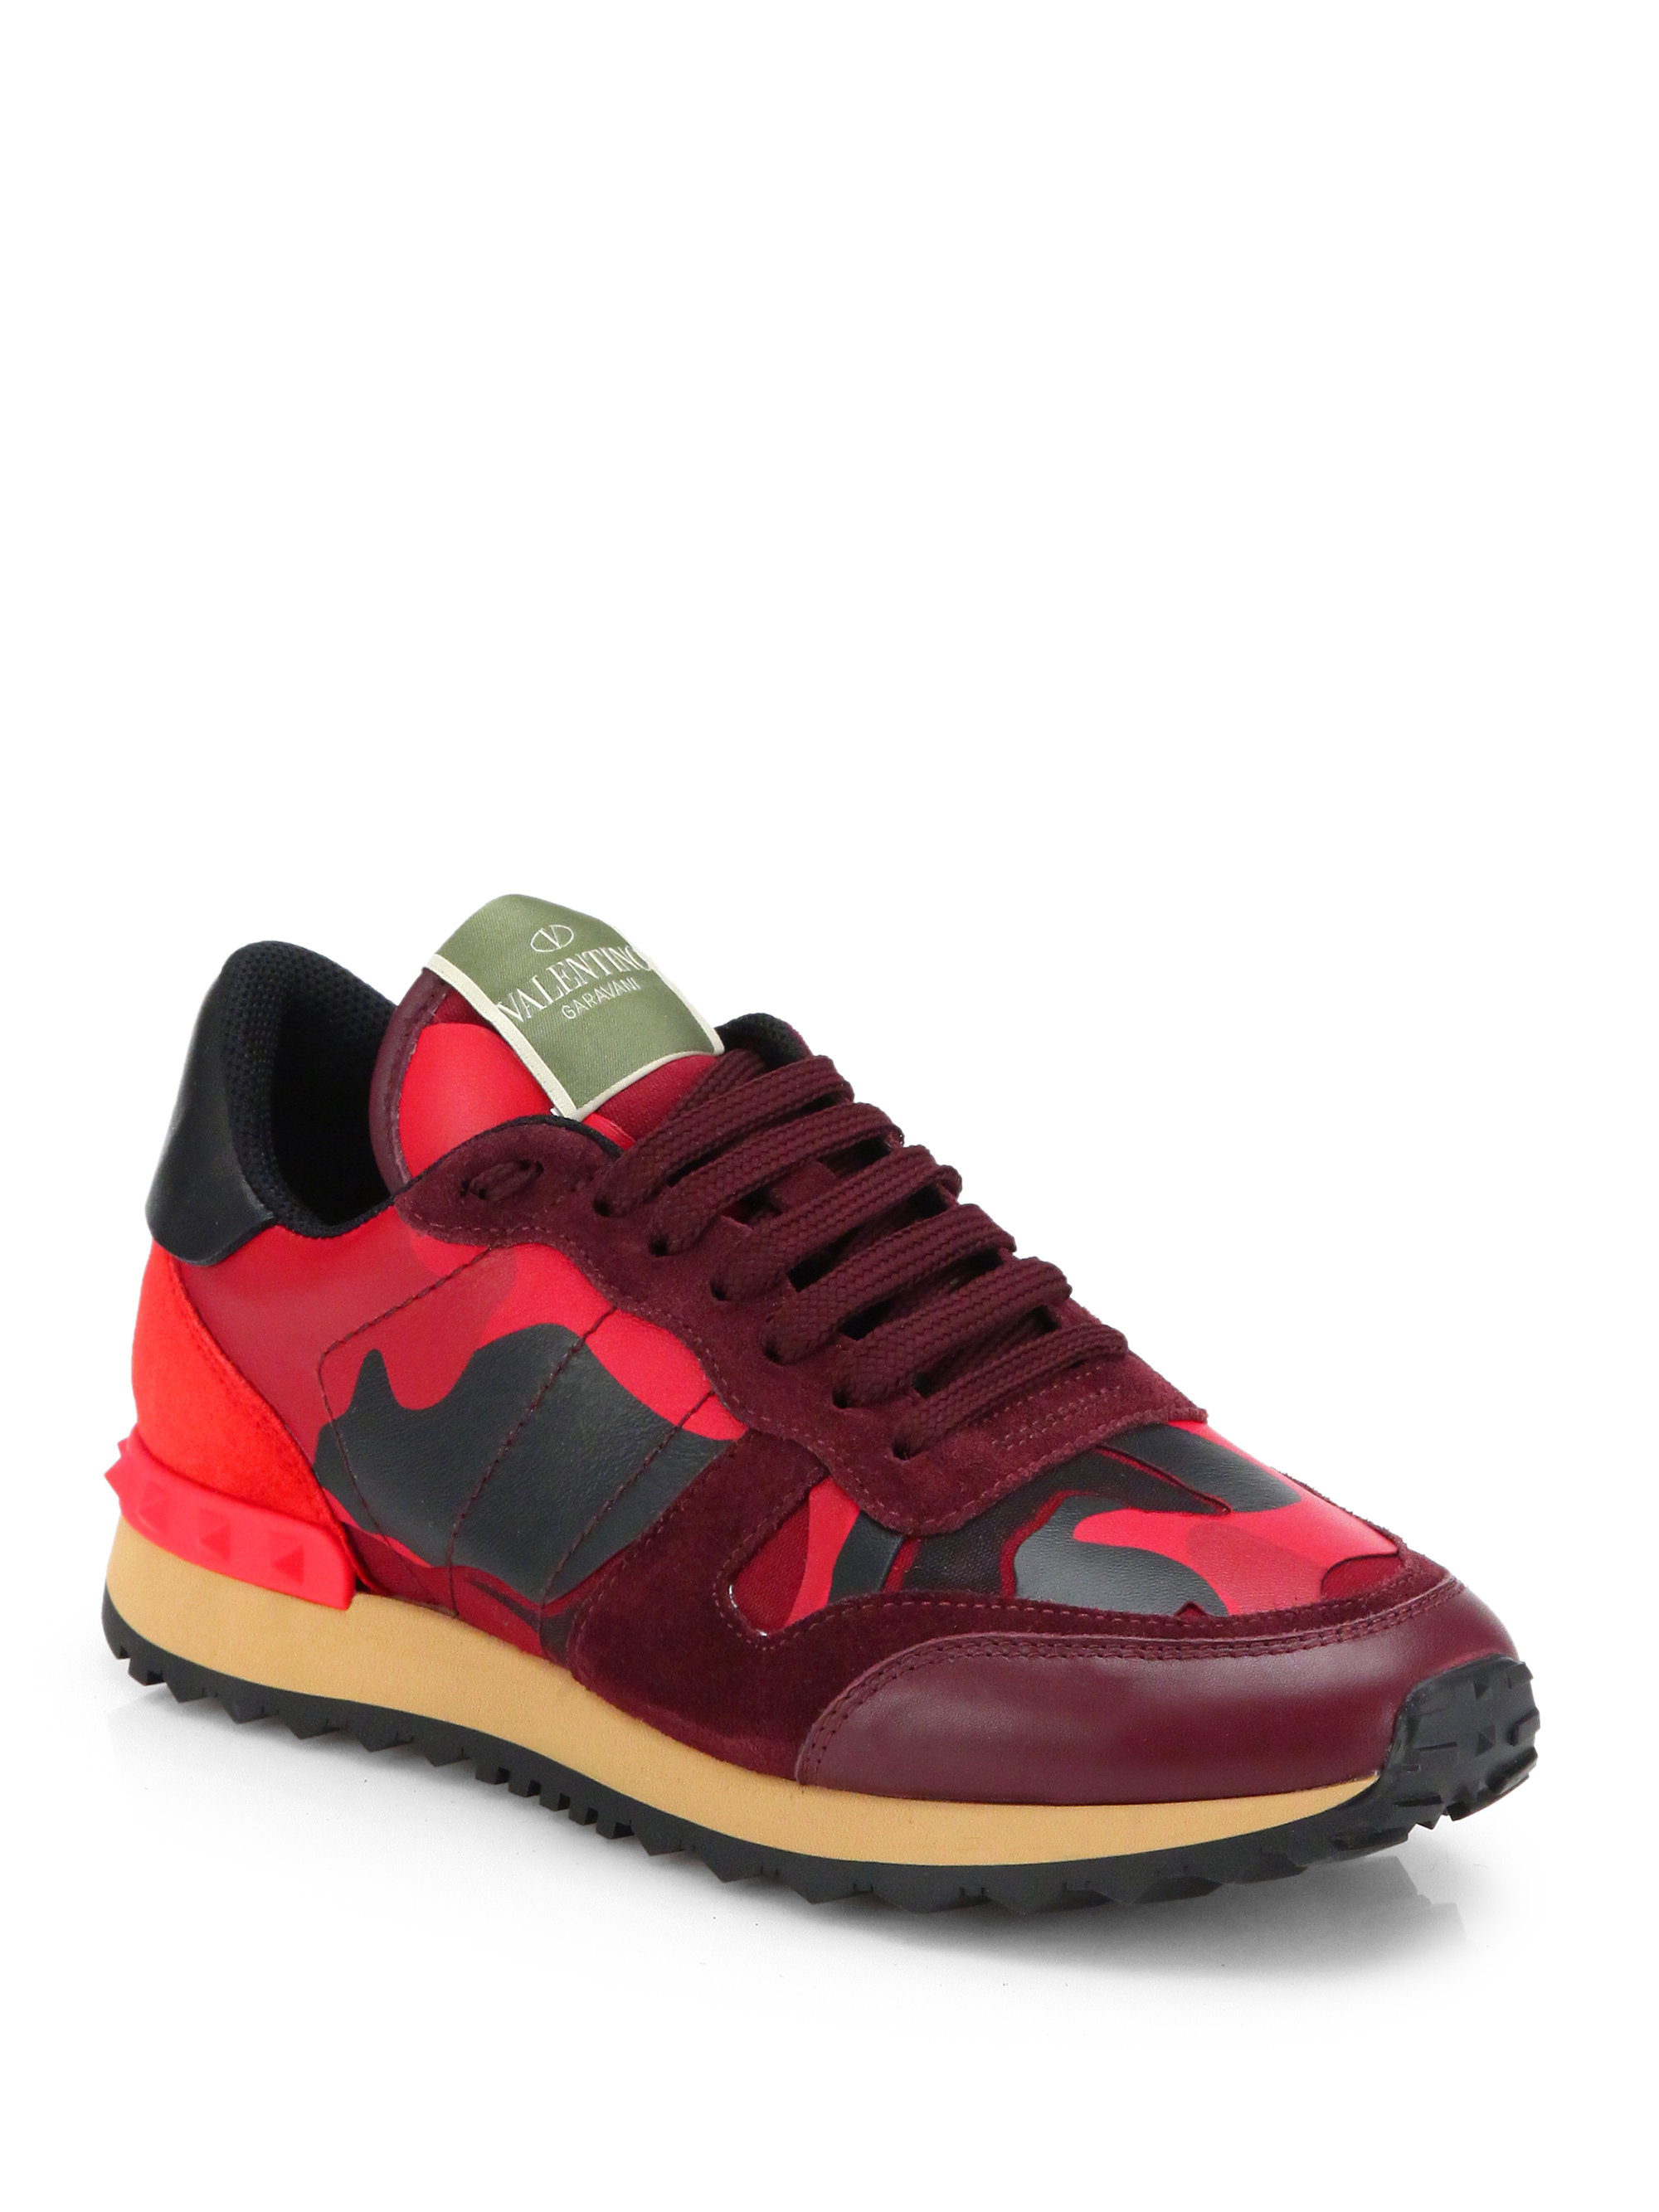 Lyst Valentino Camouflage Leather Amp Suede Sneakers In Red